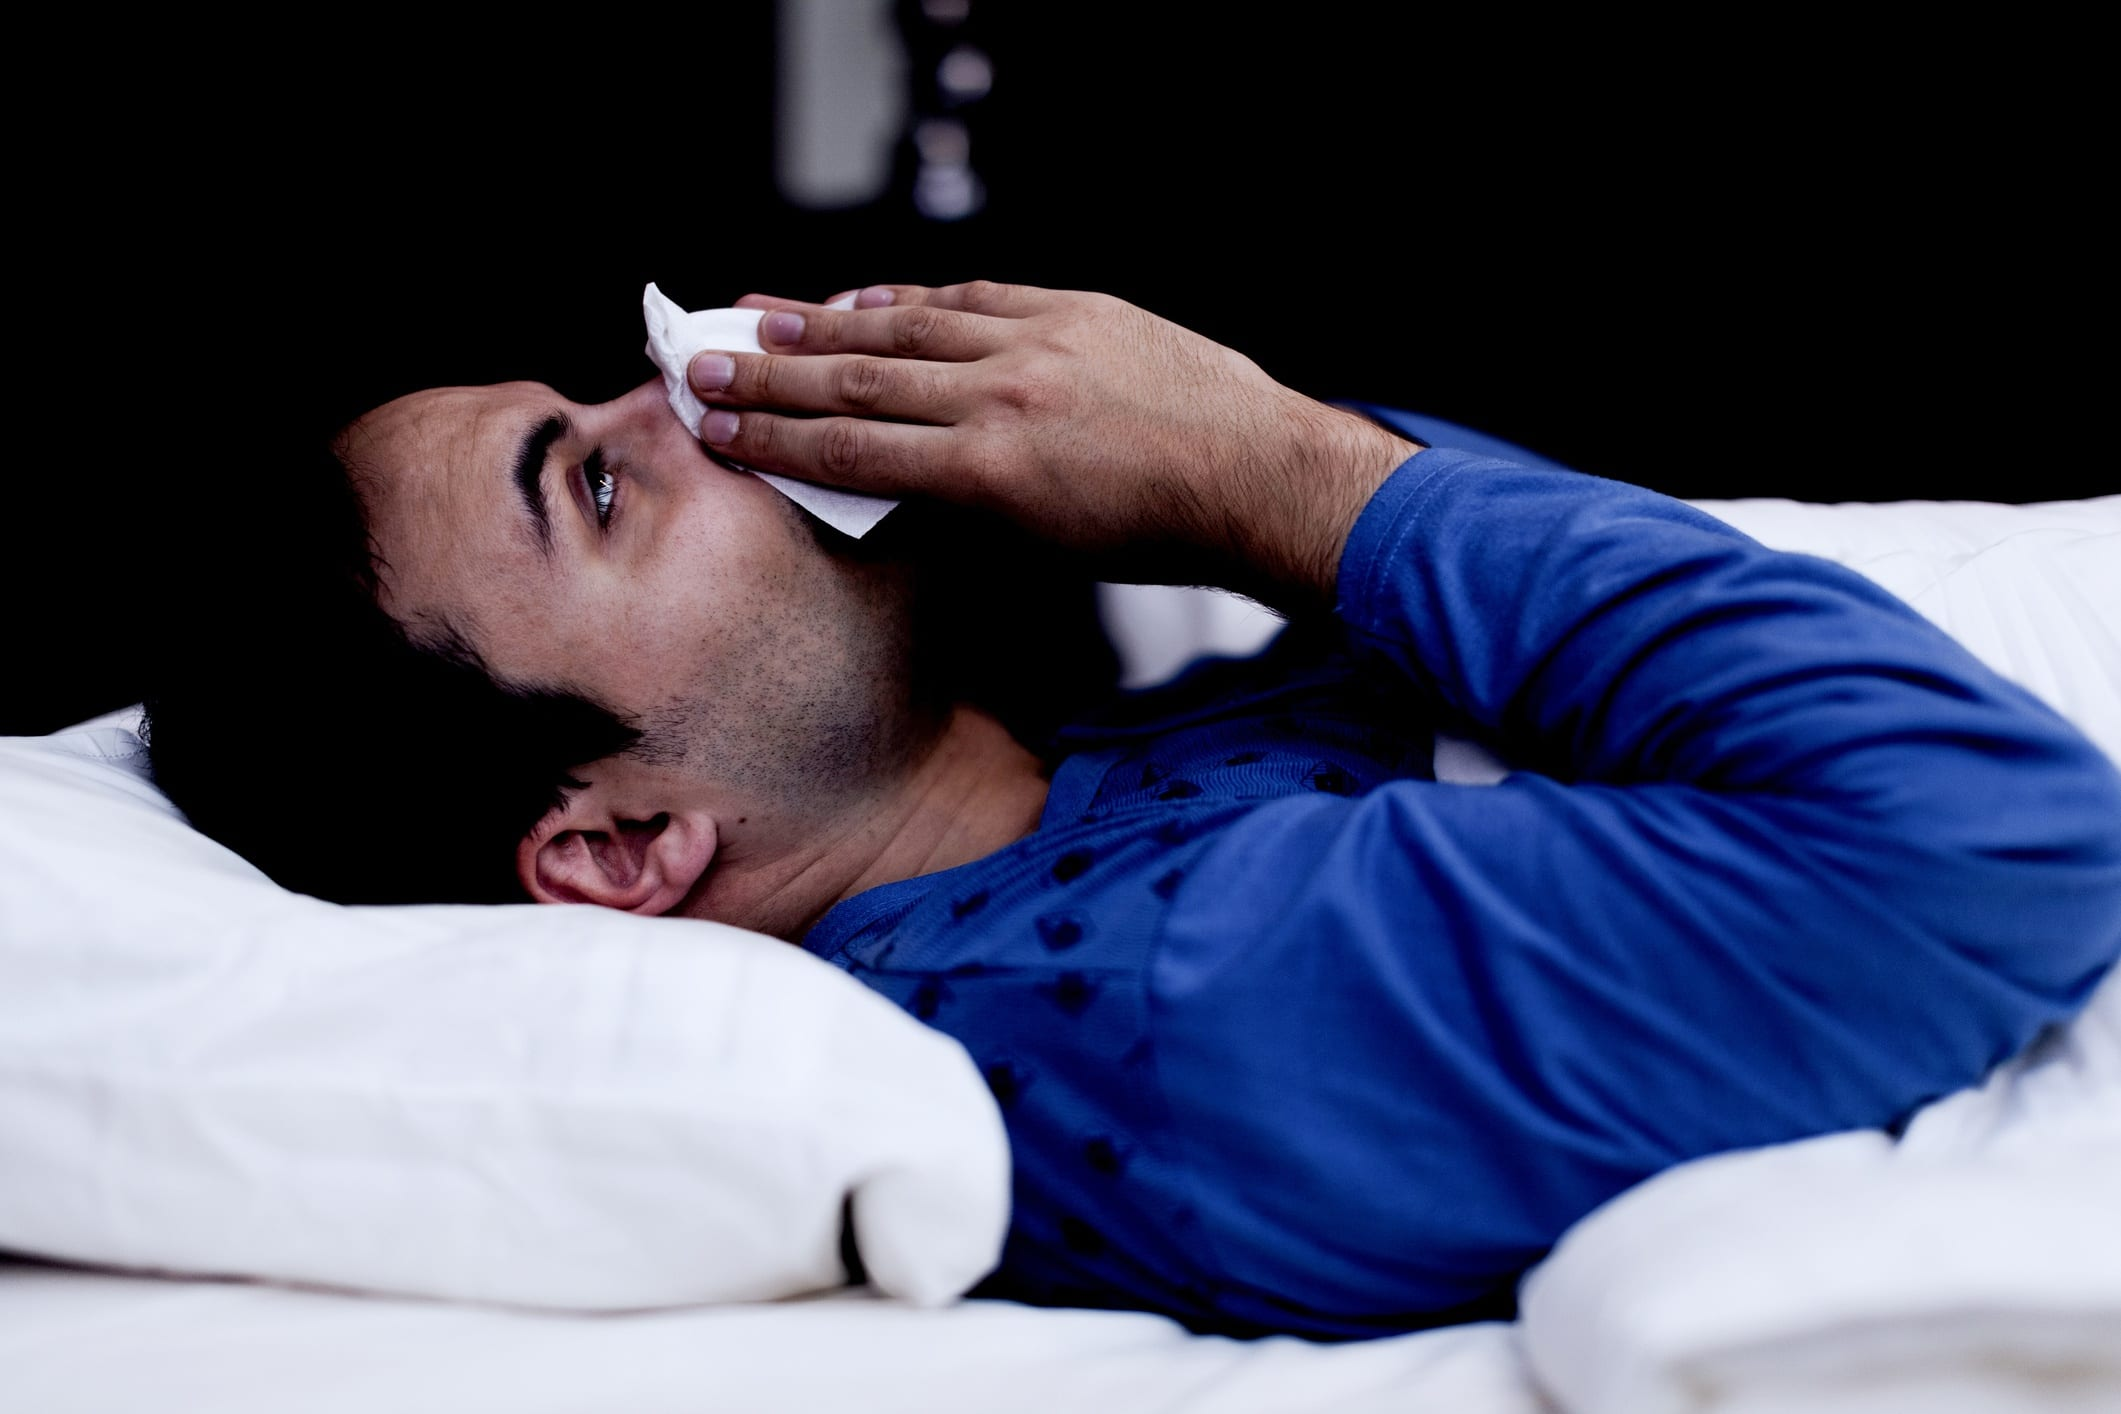 Man with allergies At Night